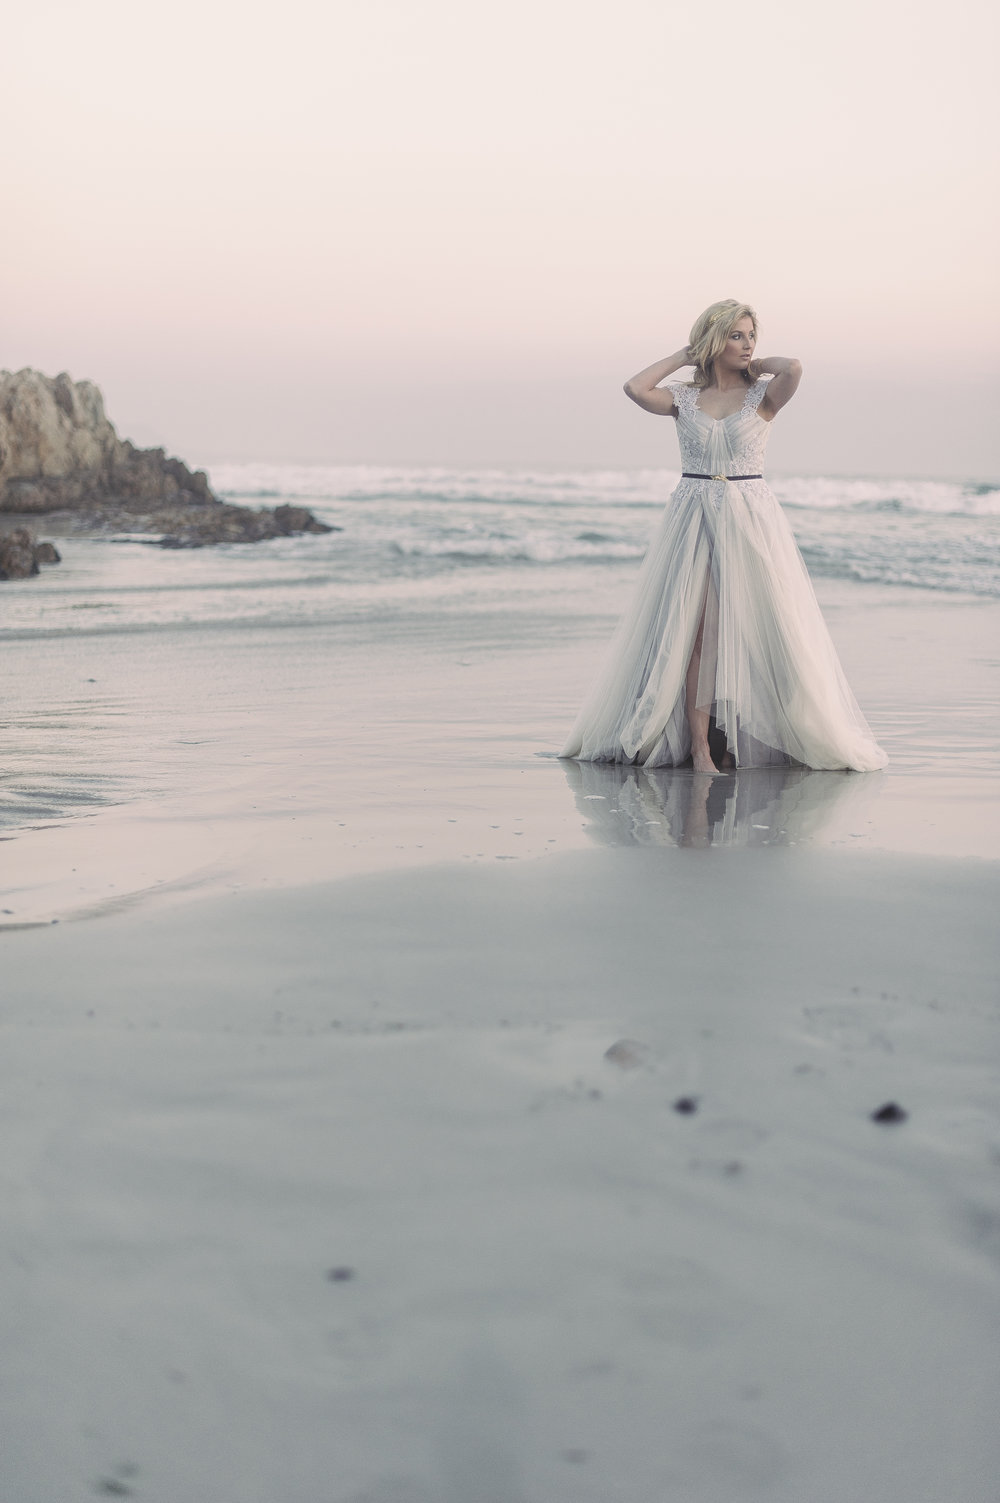 RyanParker_Wedding_Photographer_CapeTown_Hermanus_StyledShoot_DSC_6163.jpg